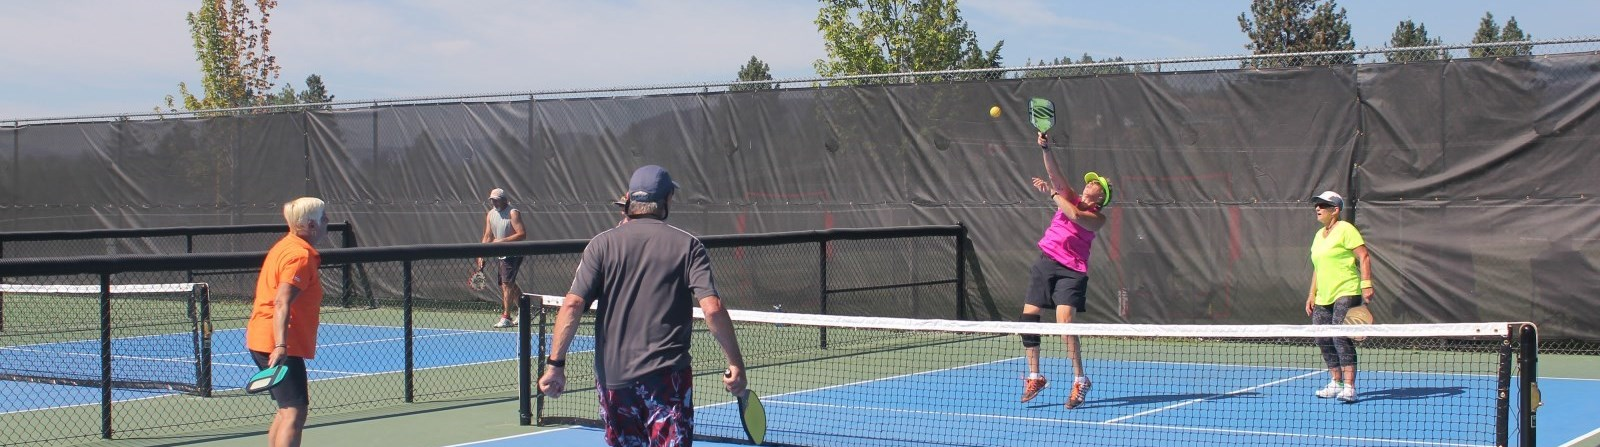 Pickleball at Mt. Bou Courts in May - CWK Image